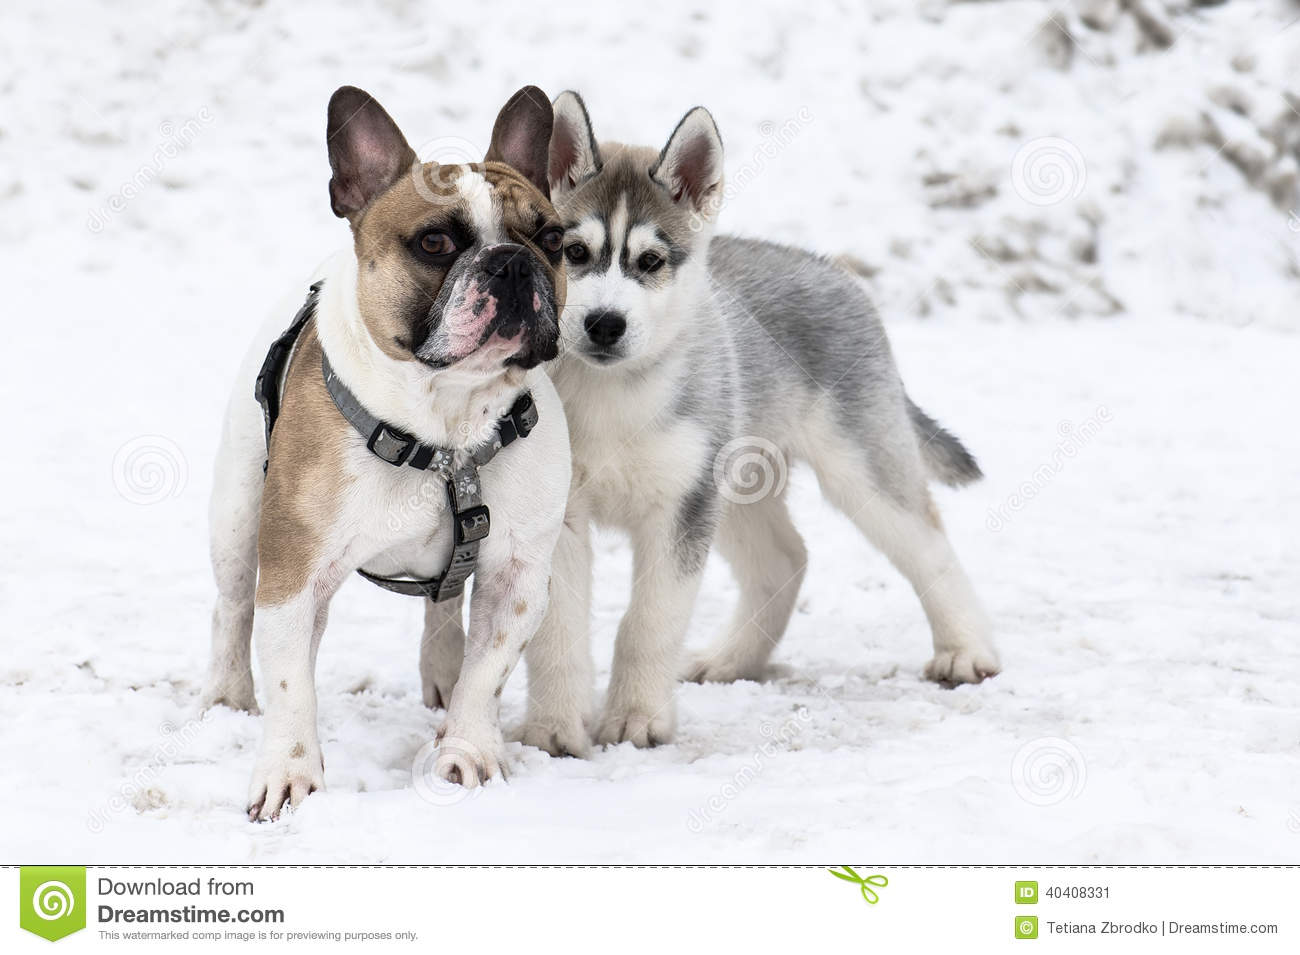 Bulldog And Husky Stock Photo - Image: 40408331